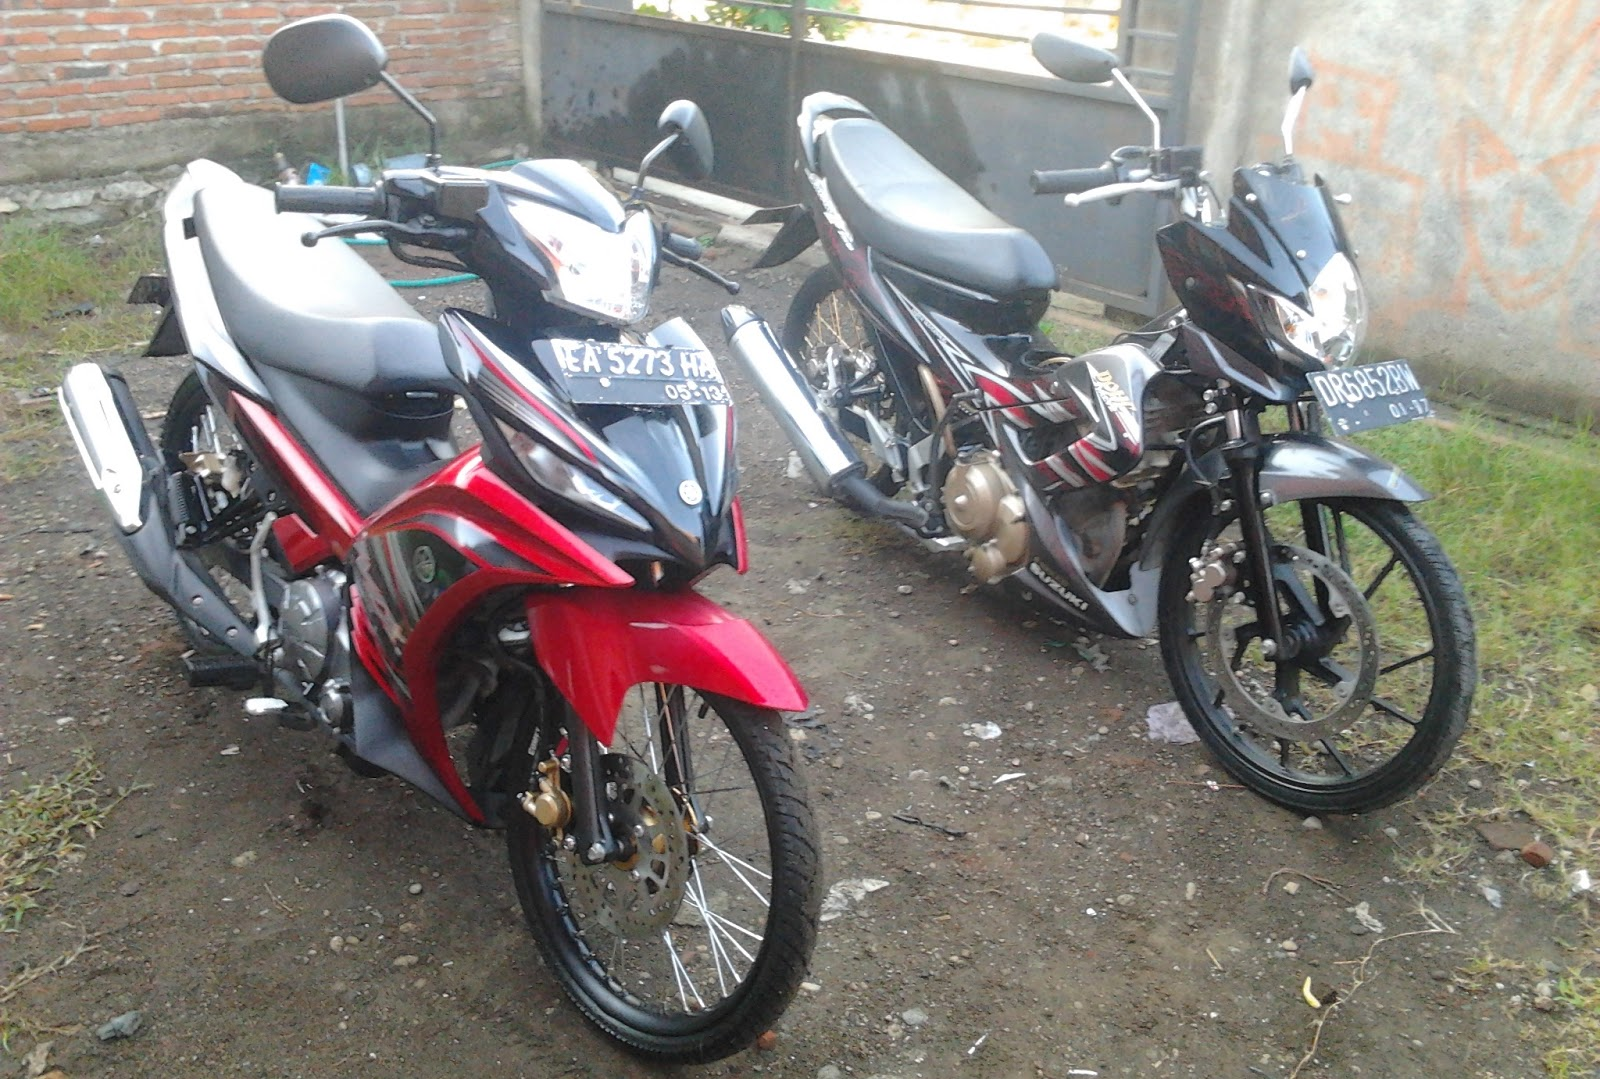 Gambar Modif Motor Jupiter Mx New Modifikasi Motor Yamaha 2016  2017